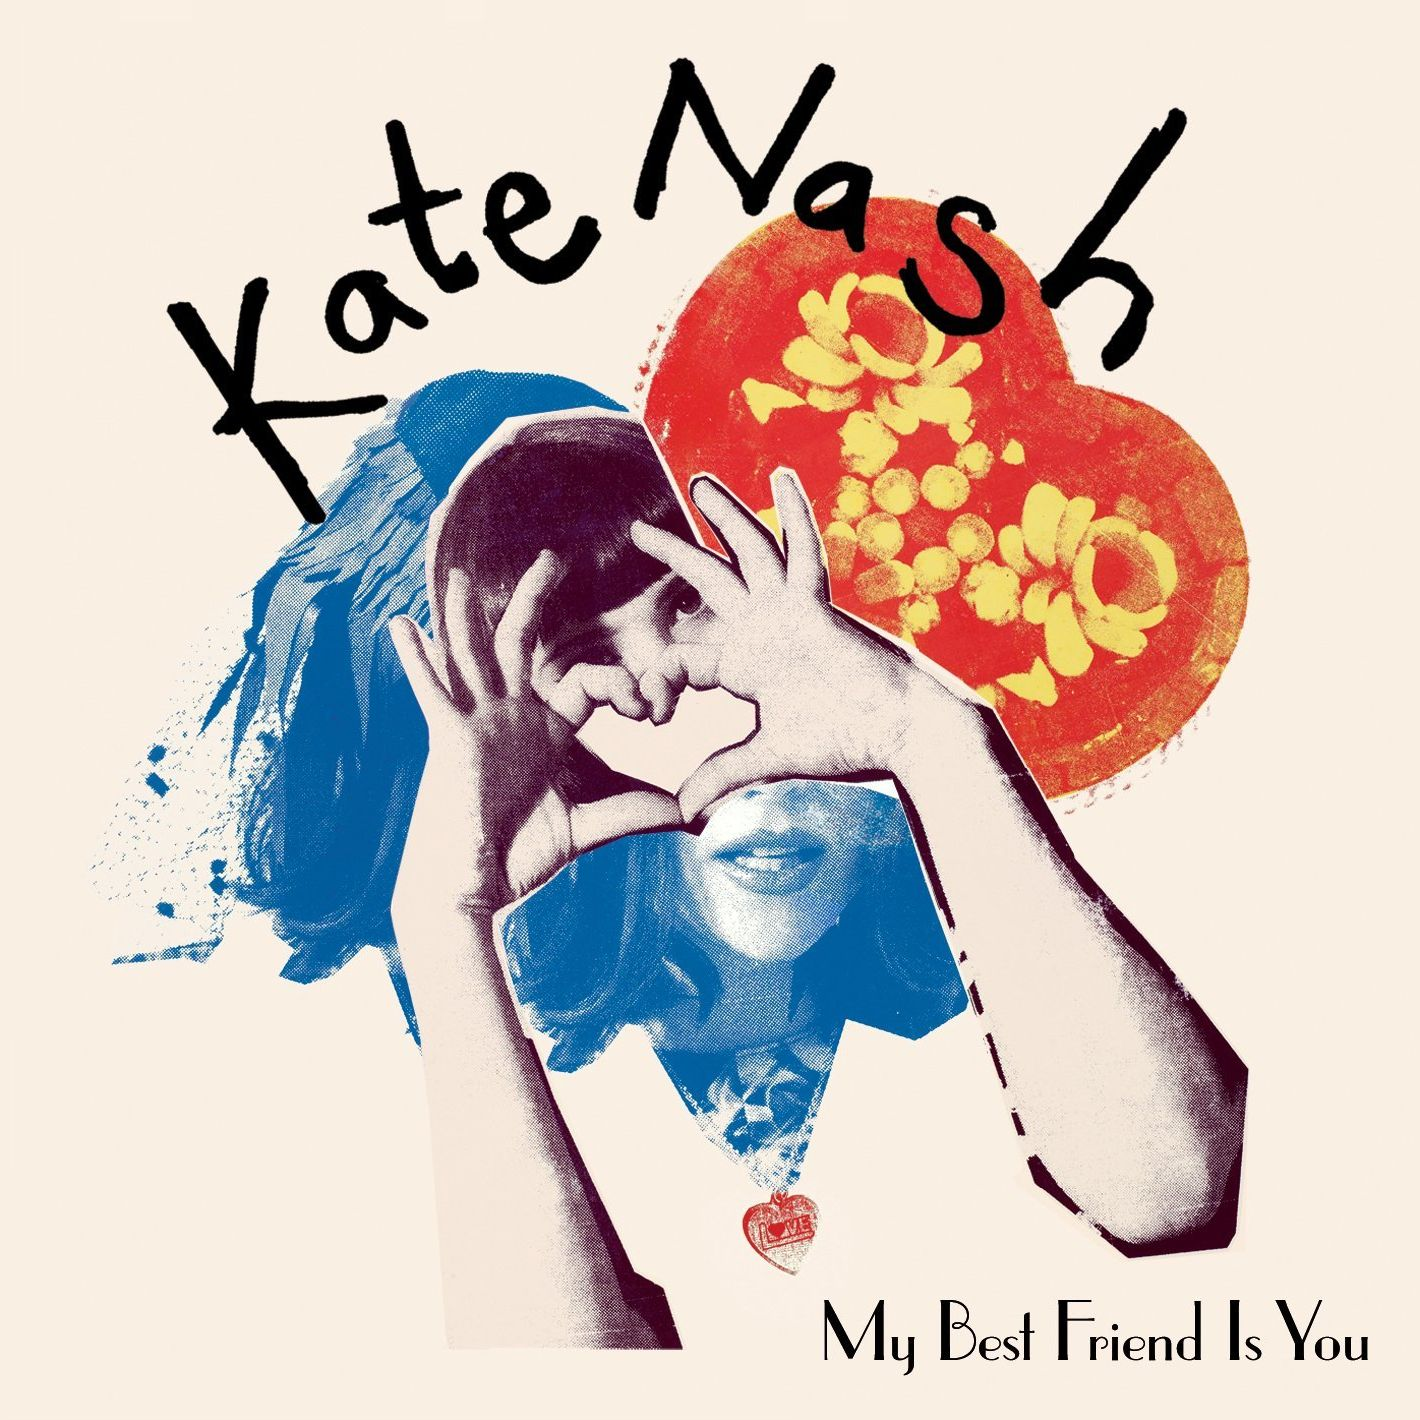 Kate Nash - My Best Friend Is You album cover